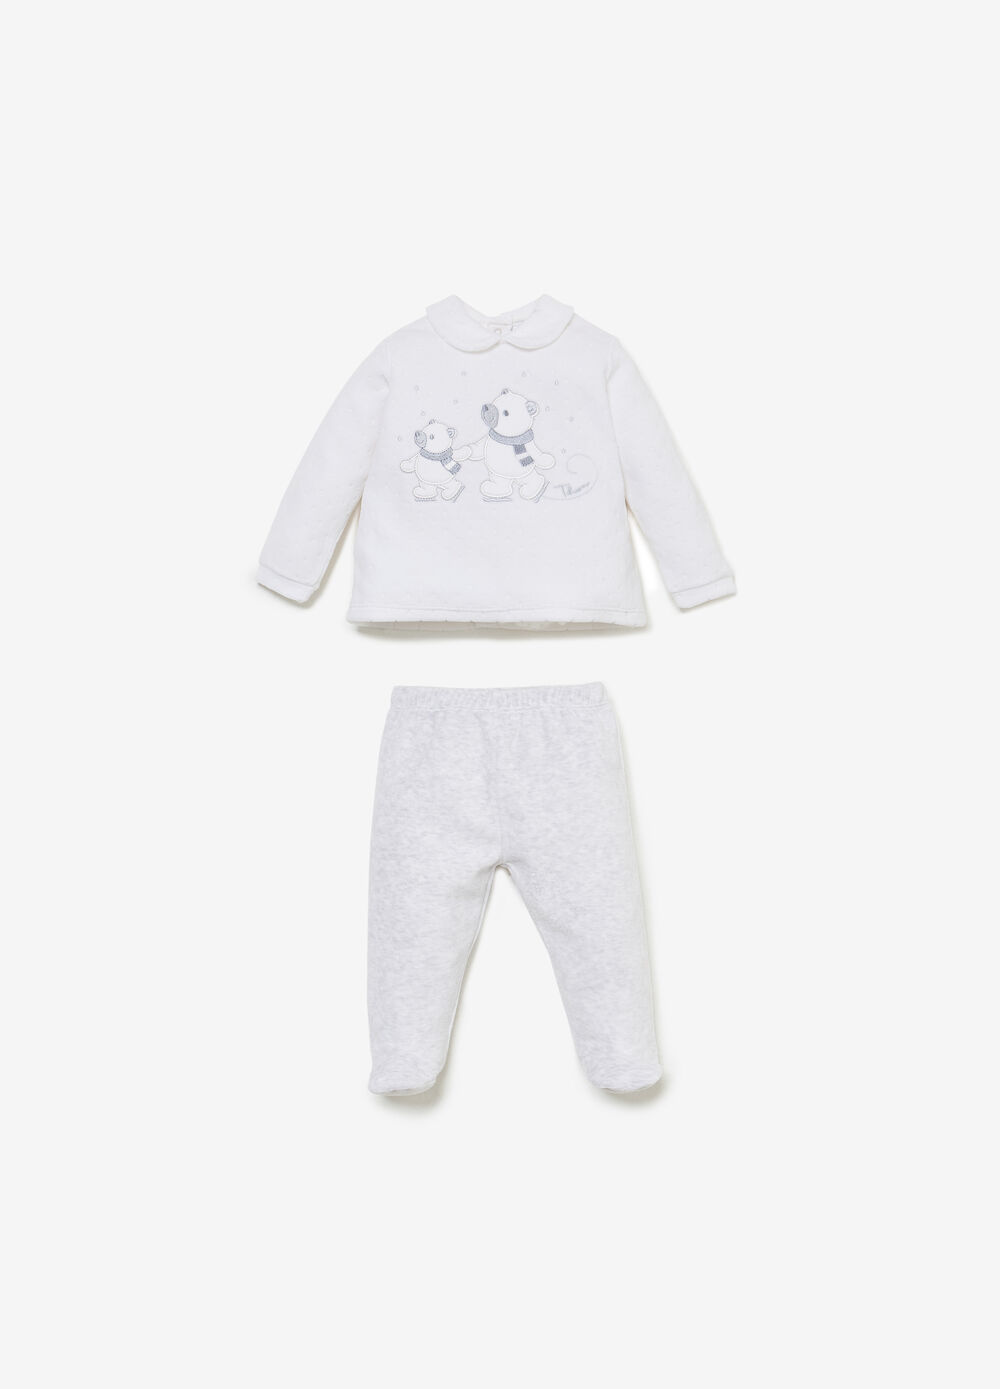 THUN cotton outfit with teddy polar bear patch